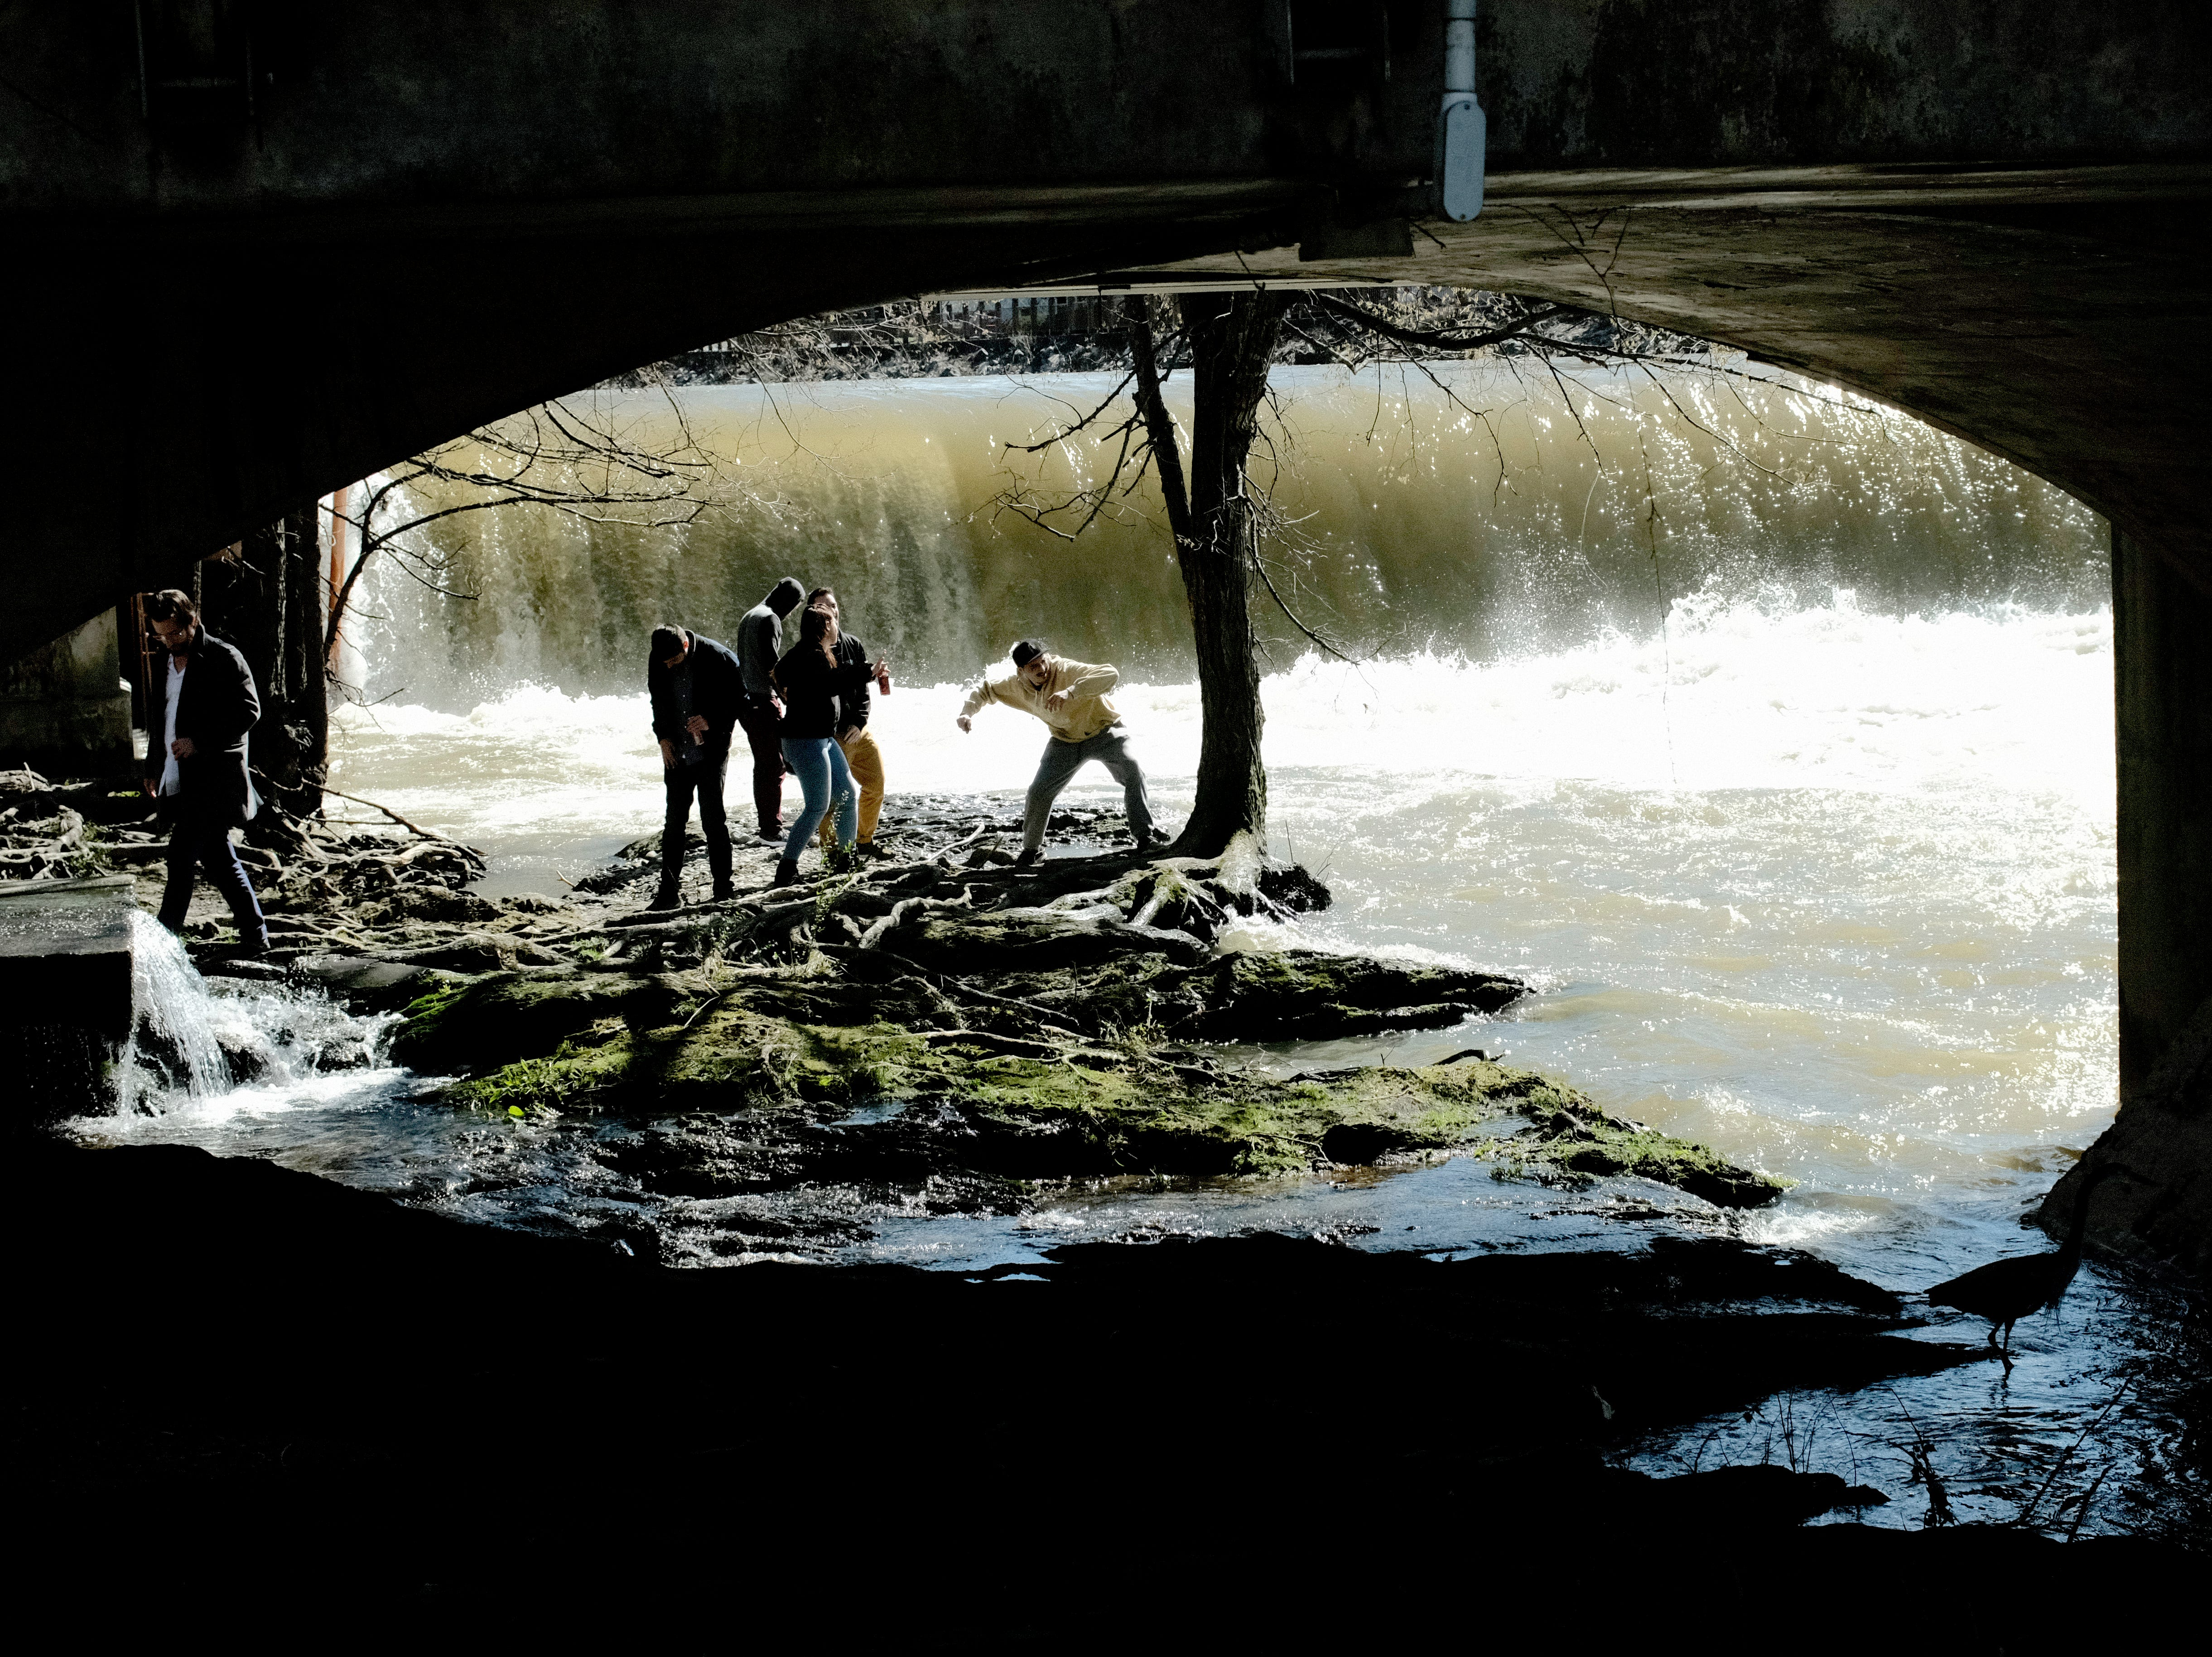 Visitors throw stones into the Little Pigeon River beside the Old Mill Restaurant's overflowing waterfall in Pigeon Forge, Tennessee on Sunday, February 24, 2019.